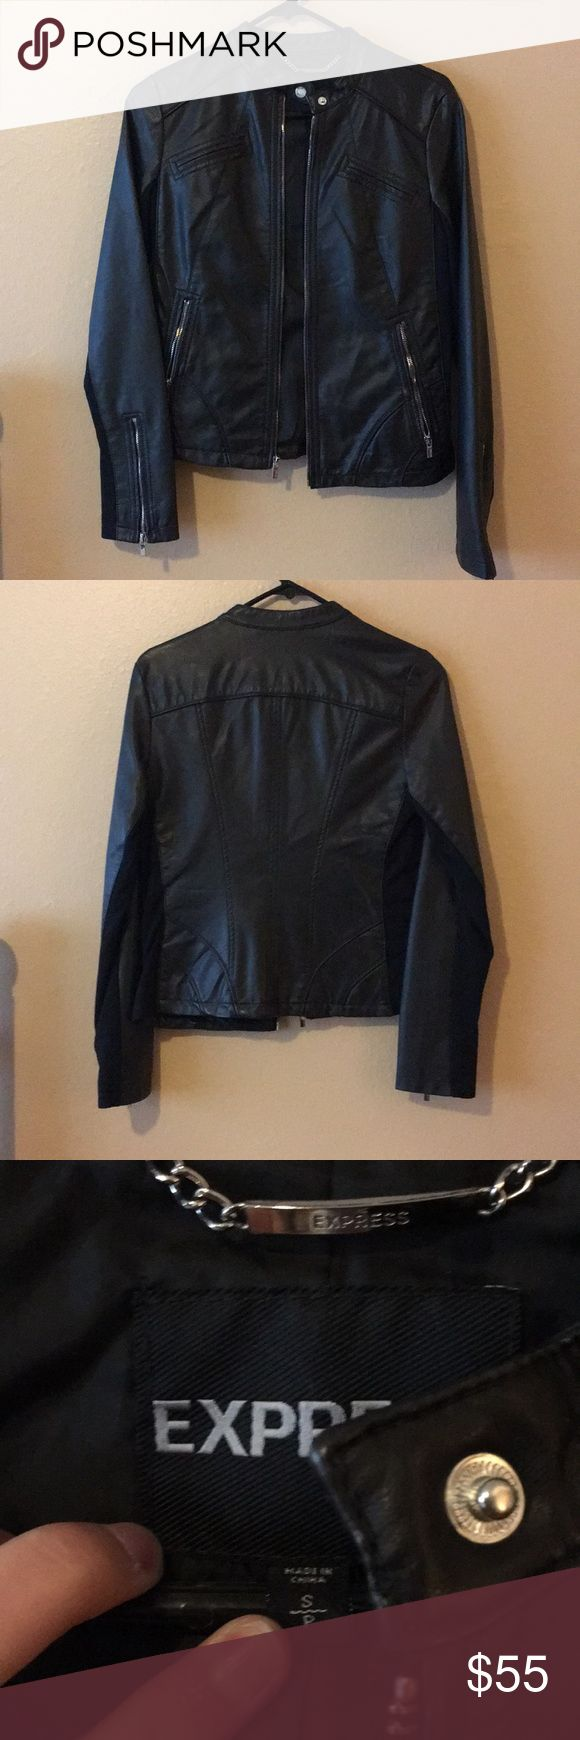 Express Black Faux Leather Jacket Express Black Faux Leather Jacket -Size Small -Took the tags off but has NEVER been worn -Excellent condition Express Jackets & Coats